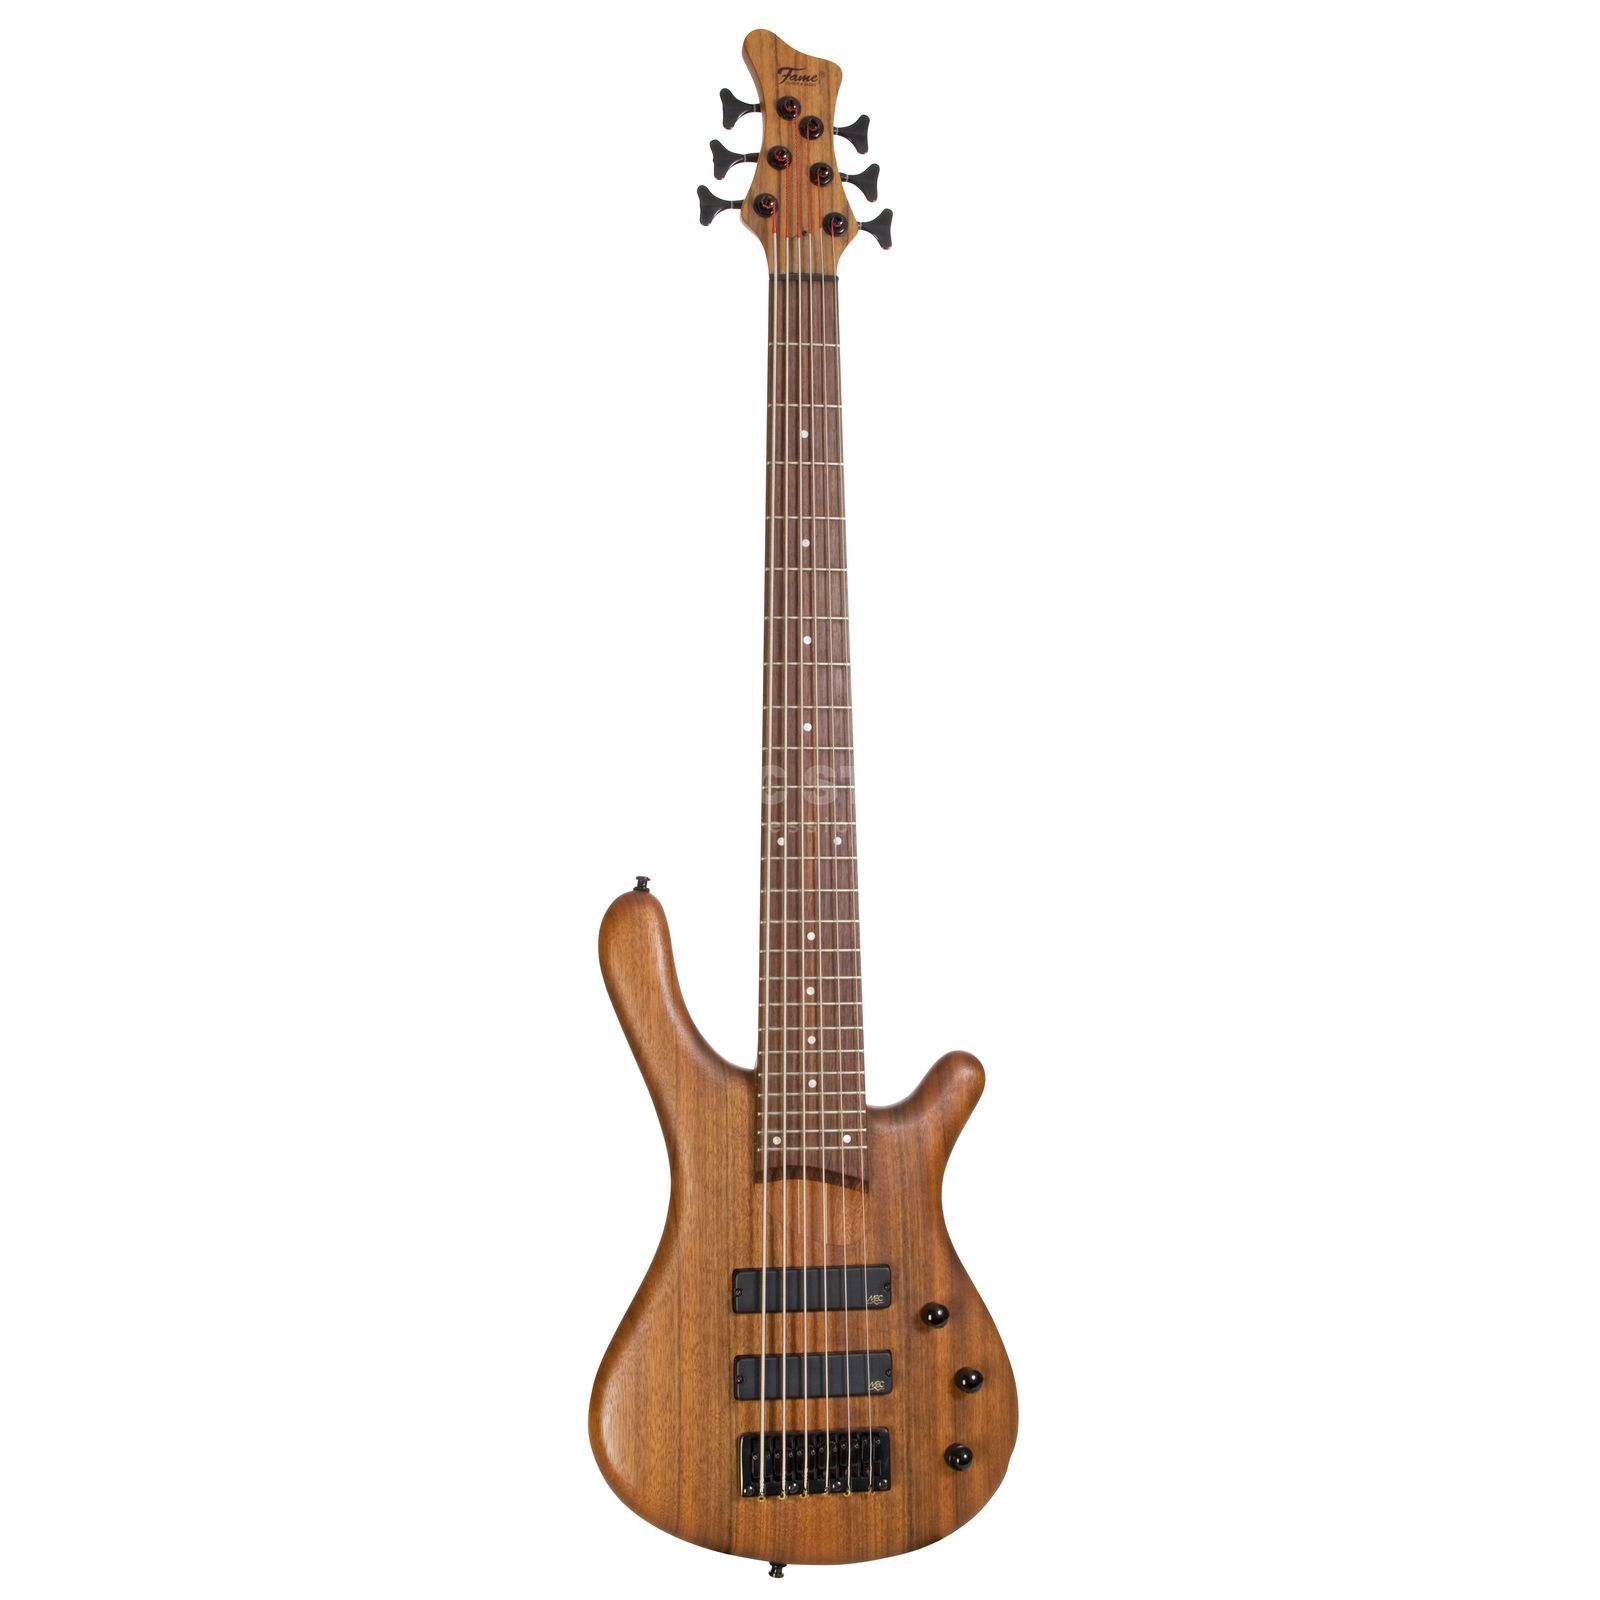 Fame Baphomet 6 NT 6-String E-Bass Guitar, Natural Oil Finish Produktbillede